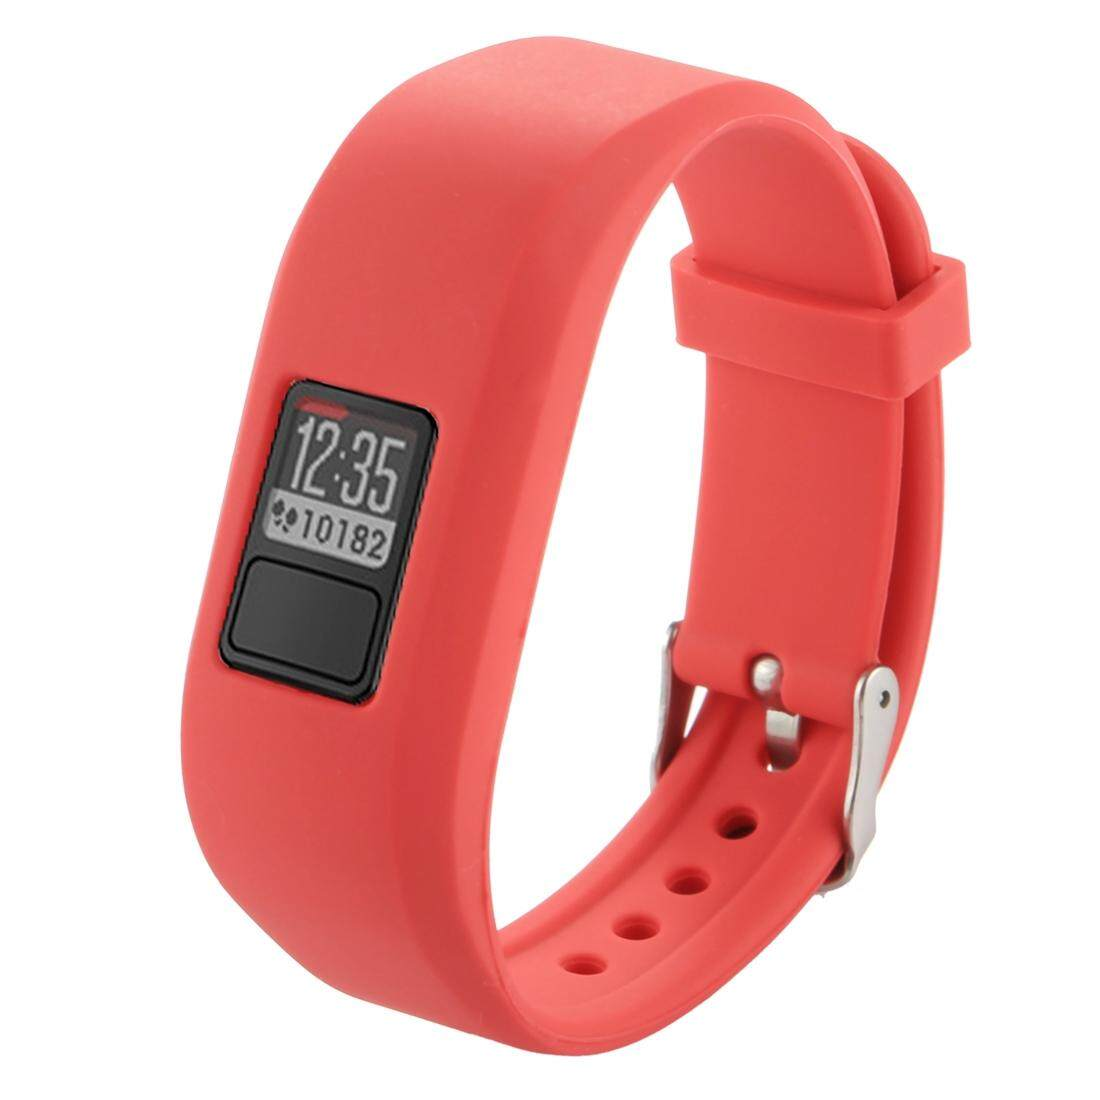 For Garmin Vivofit 3 Smart Watch Silicone Watchband, Length: about 24.2cm(Red) - intl